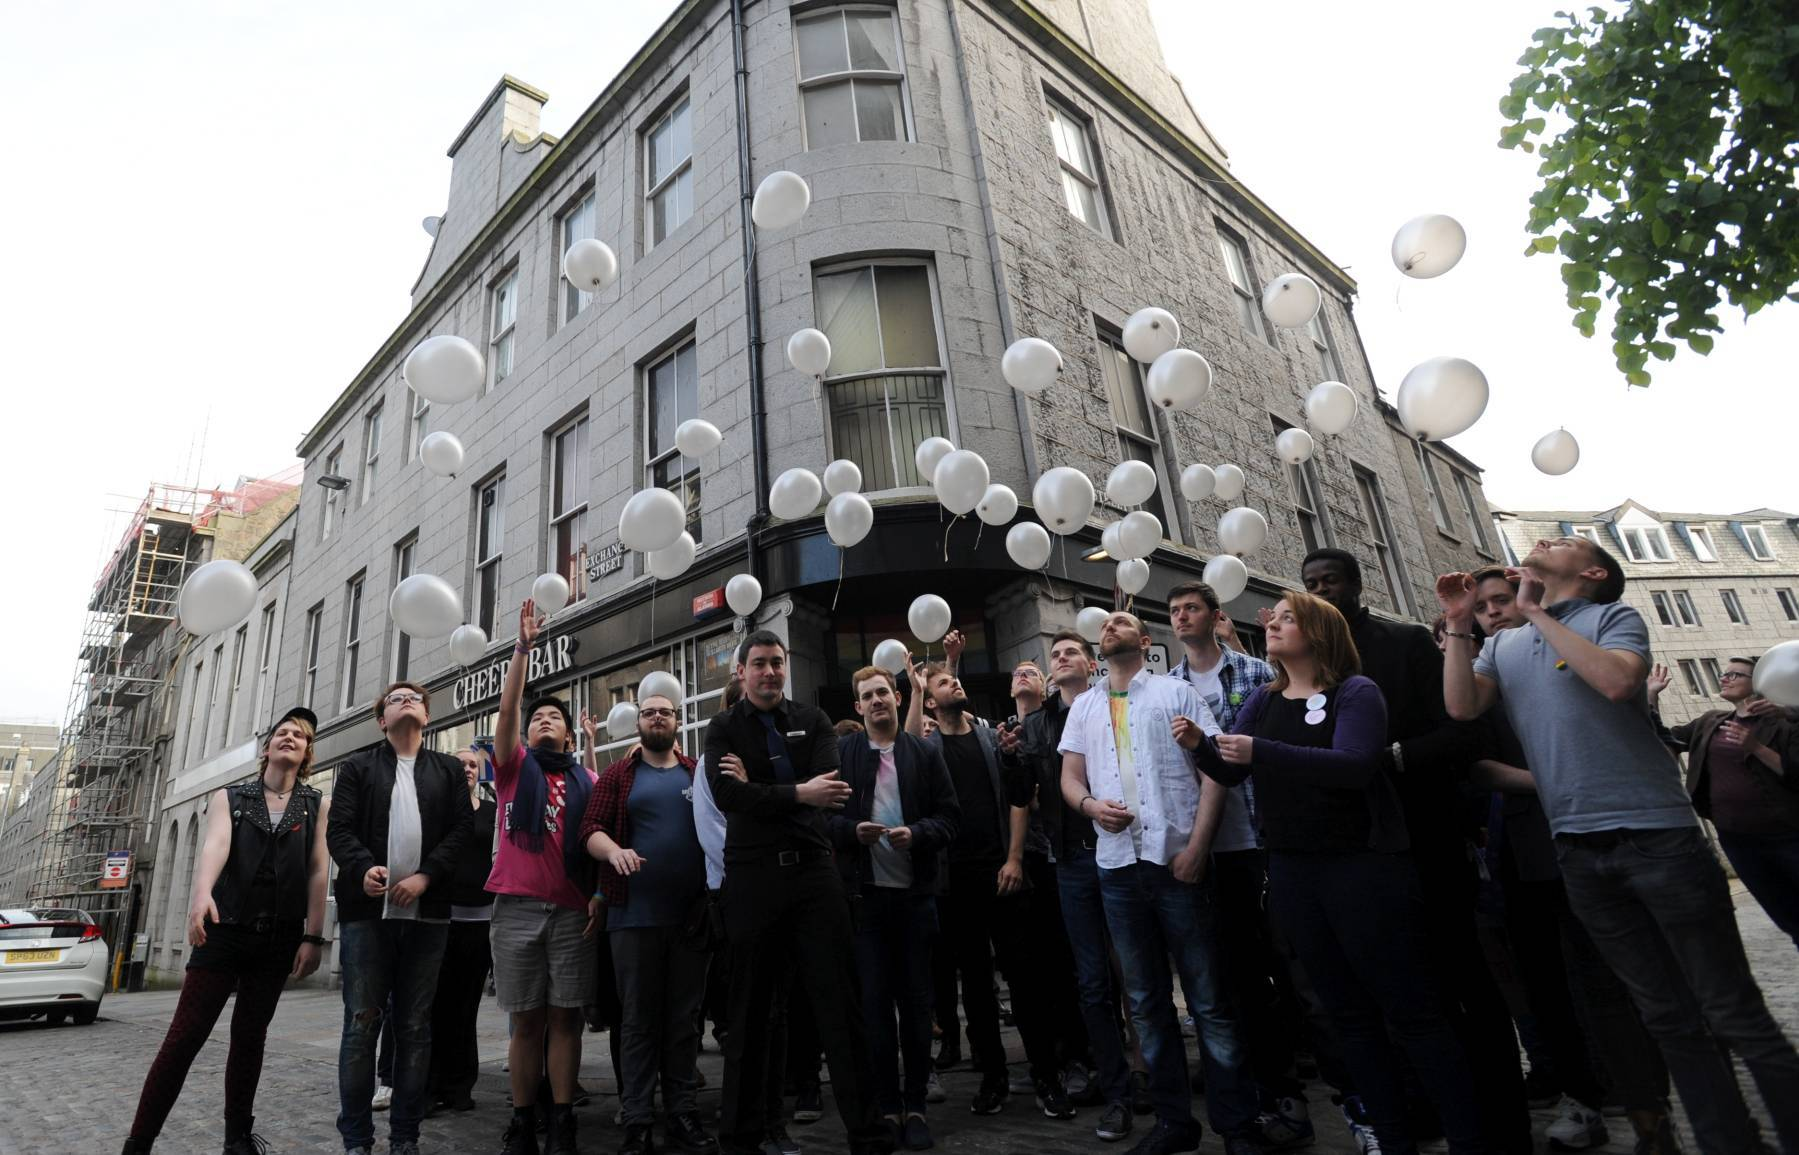 A minutes silence was held at Cheerz Bar and 50 balloons were released for the victims of the Orlando shootings.